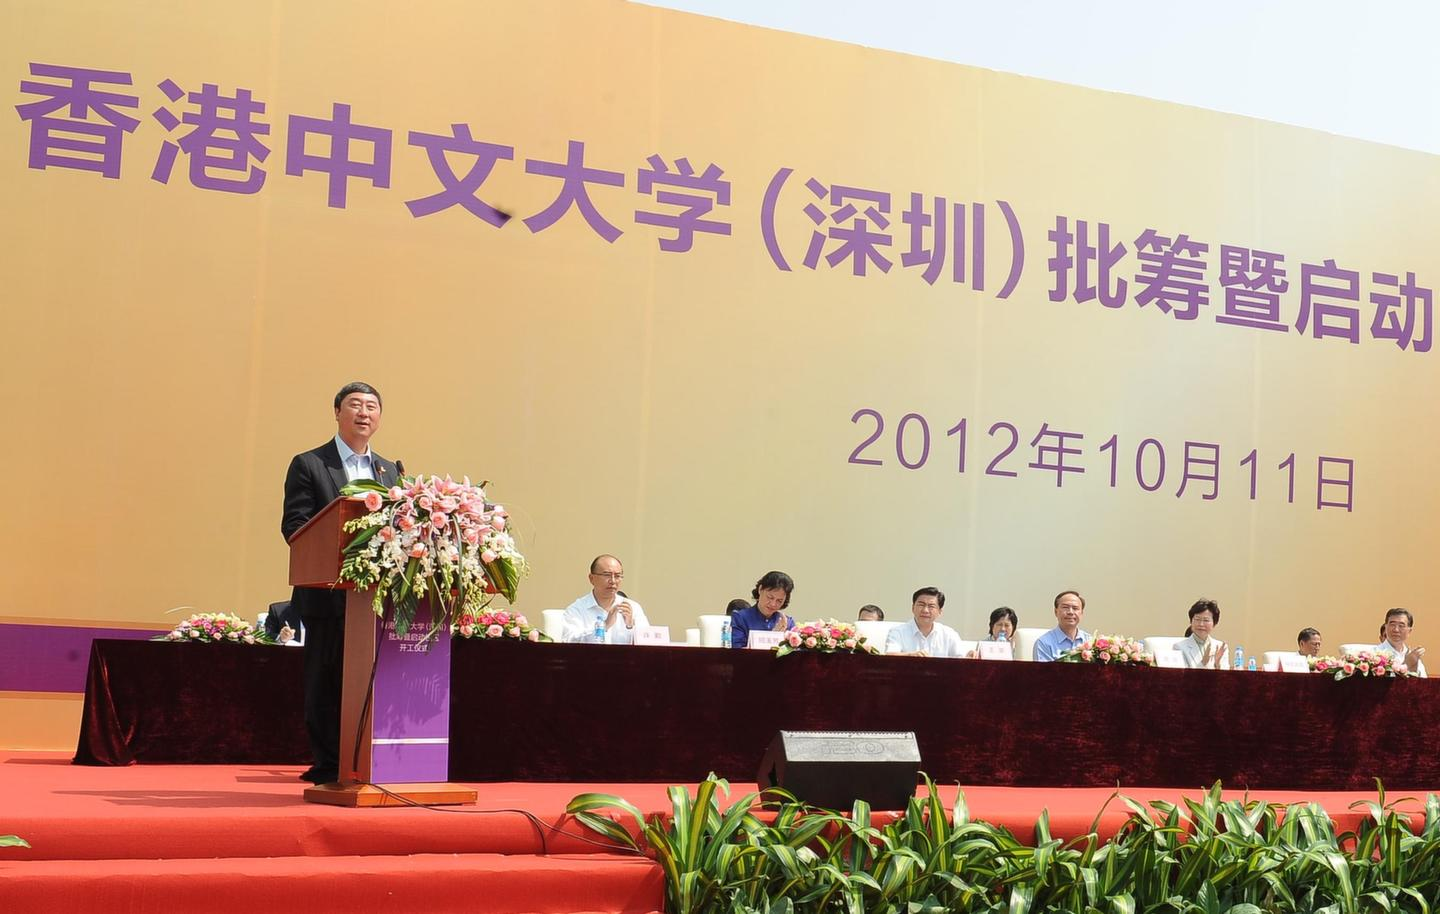 Ceremony for the planning of CUHK (Shenzhen) (2012)